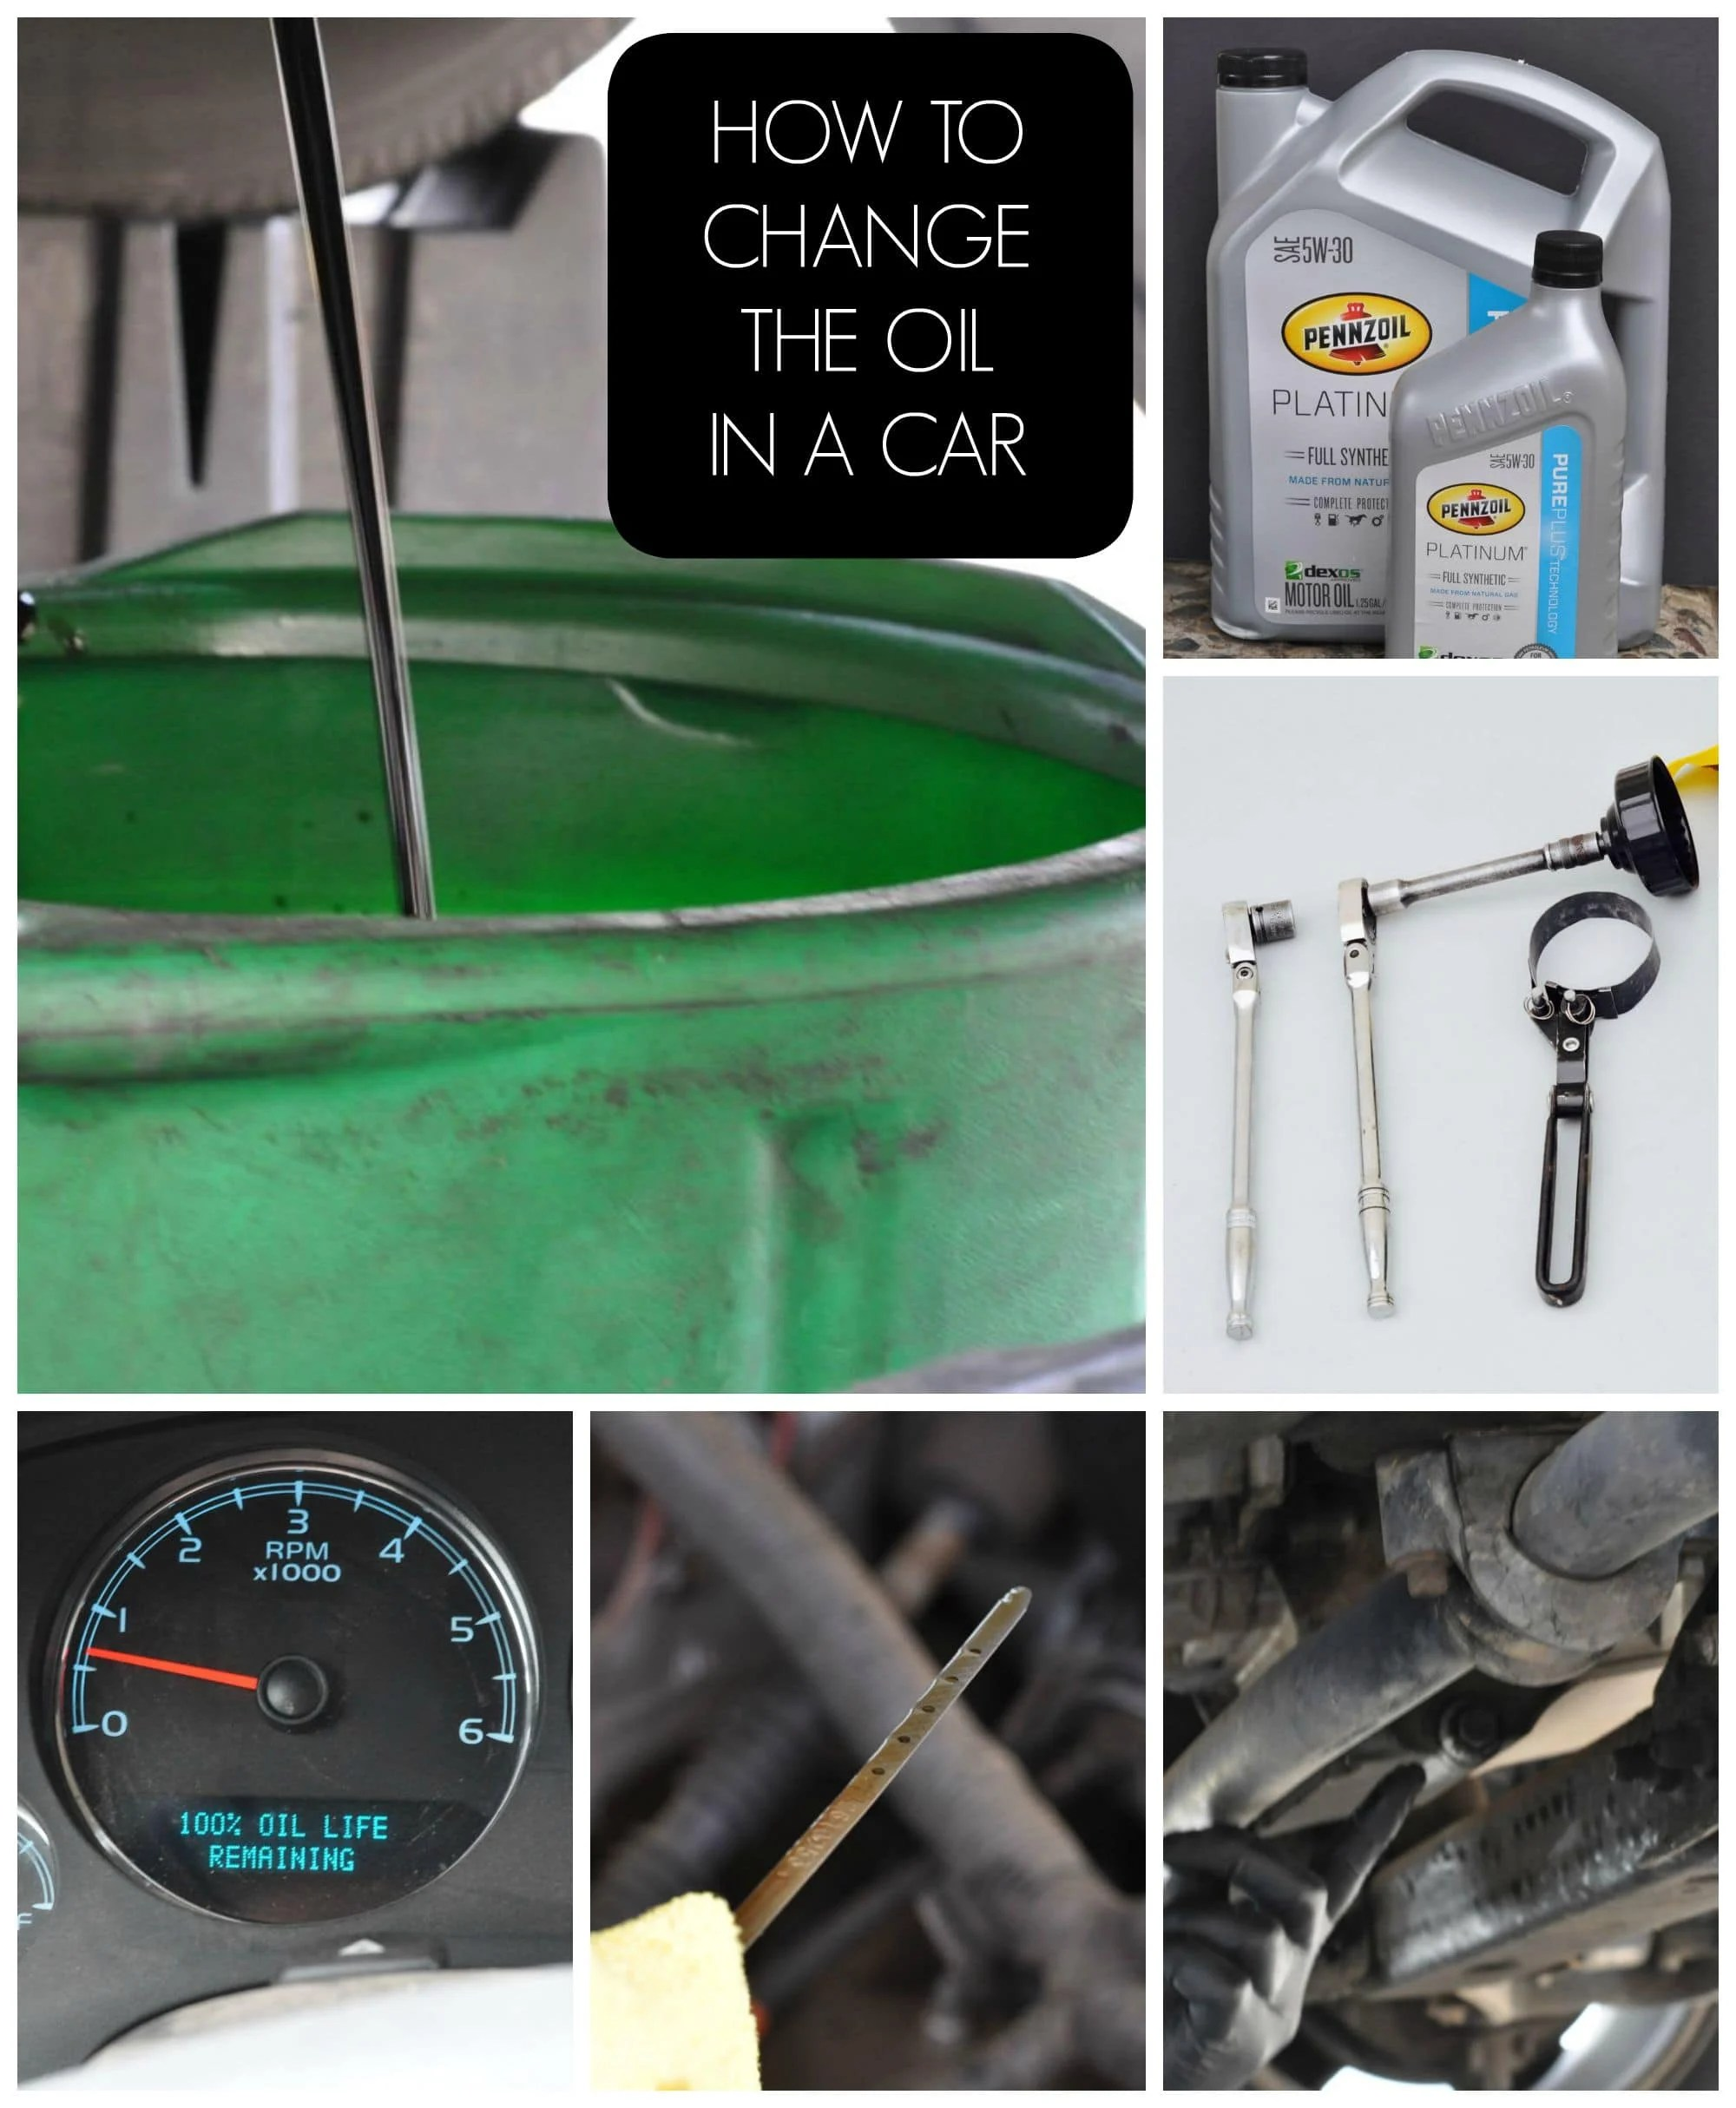 How to change the oil in a car